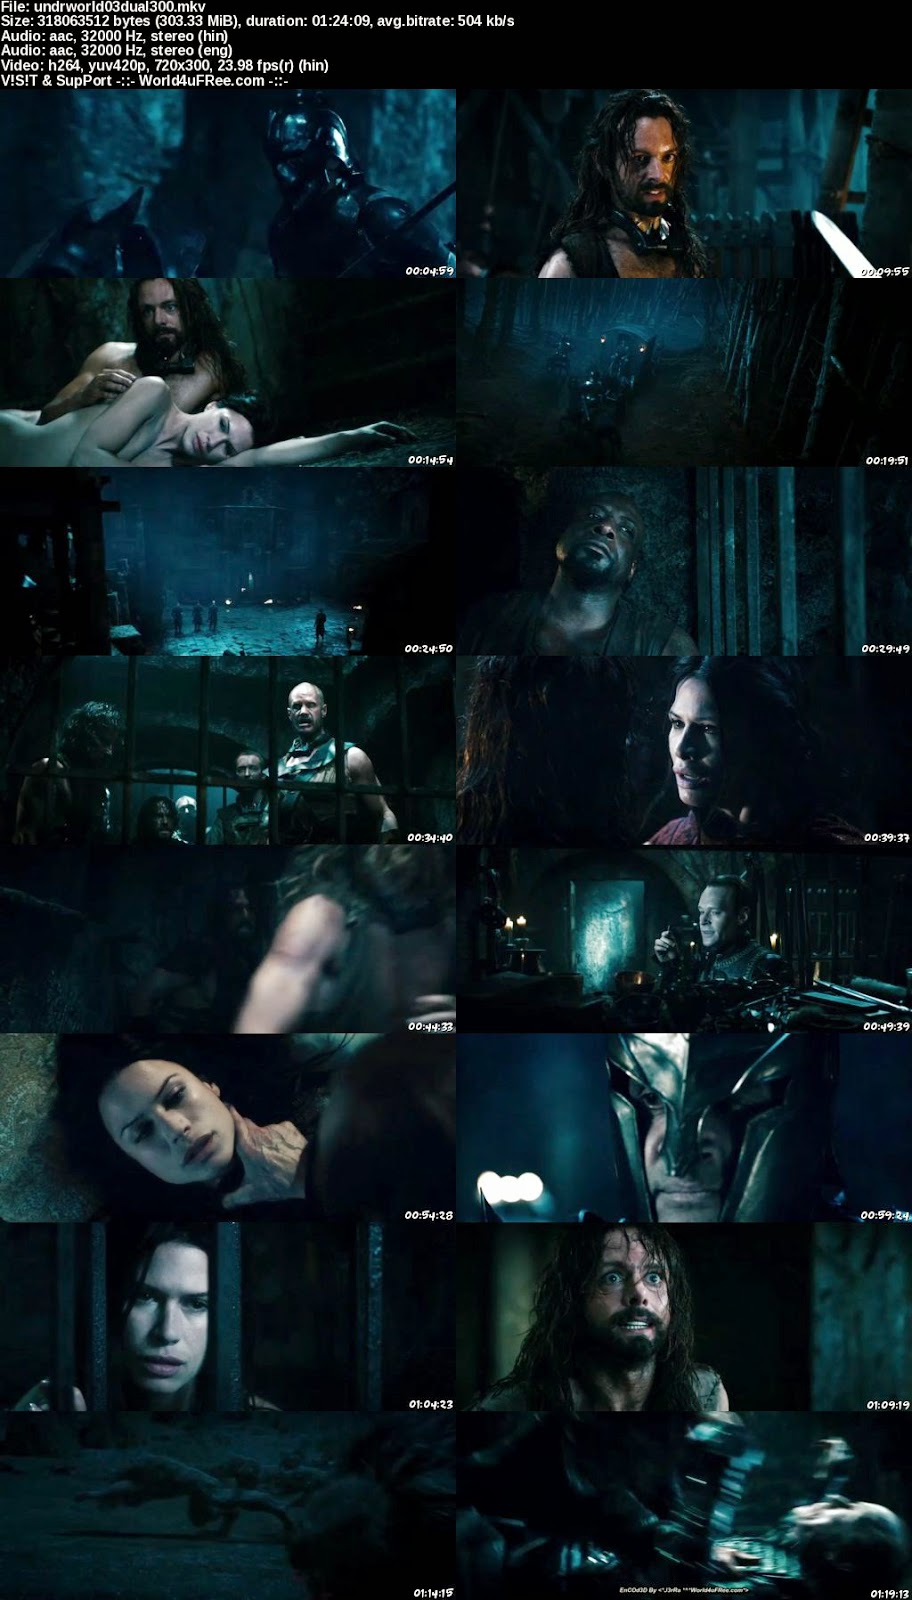 Underworld 3 Rise of the Lycans 2009 [Hindi-Eng] Dual Audio 300mb BRRip 480p world4ufree.ws hollywood movie Underworld 3 Rise of the Lycans 2009 hindi dubbed dual audio 480p brrip bluray compressed small size 300mb free download or watch online at world4ufree.ws